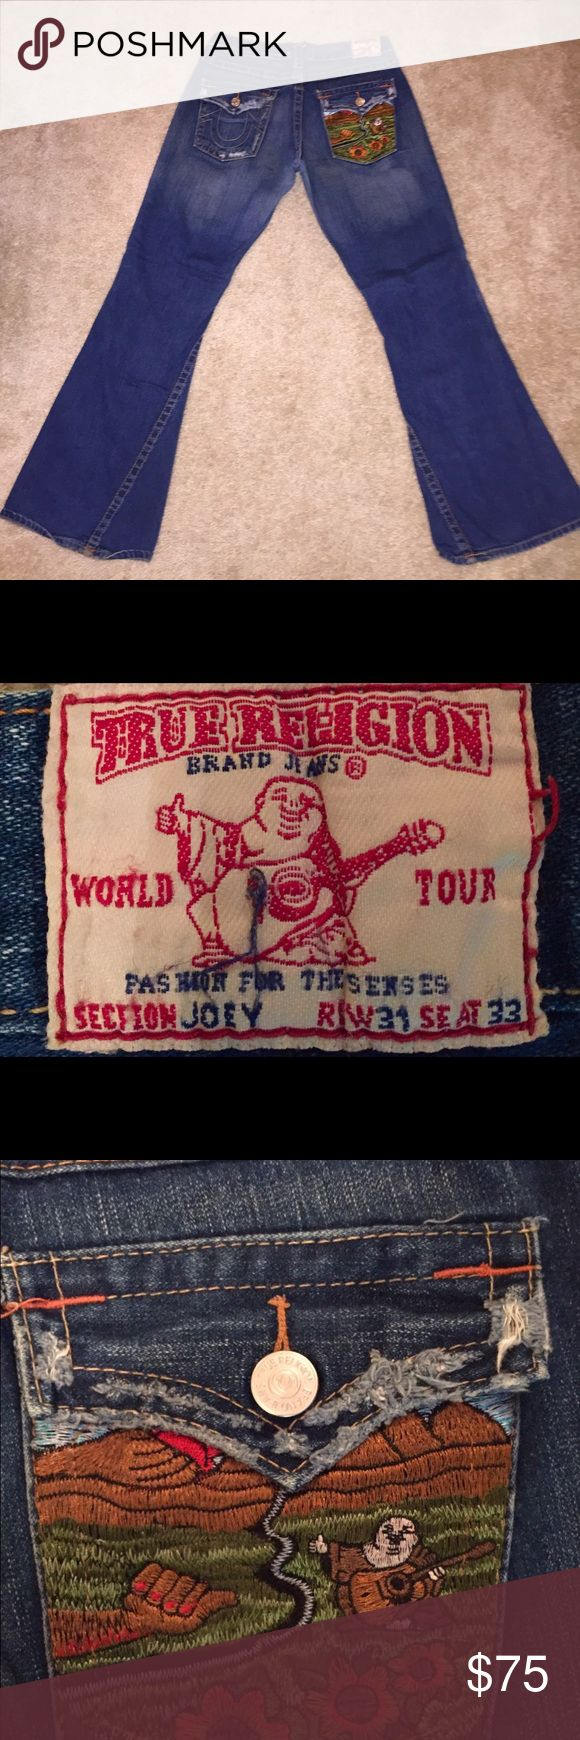 True Religion Jeans Gently worn..like brand new. Distressed. Cozy, pre-washed. Seams distressed a little but great shape. Very good looking pair of jeans! True Religion Pants Boot Cut & Flare